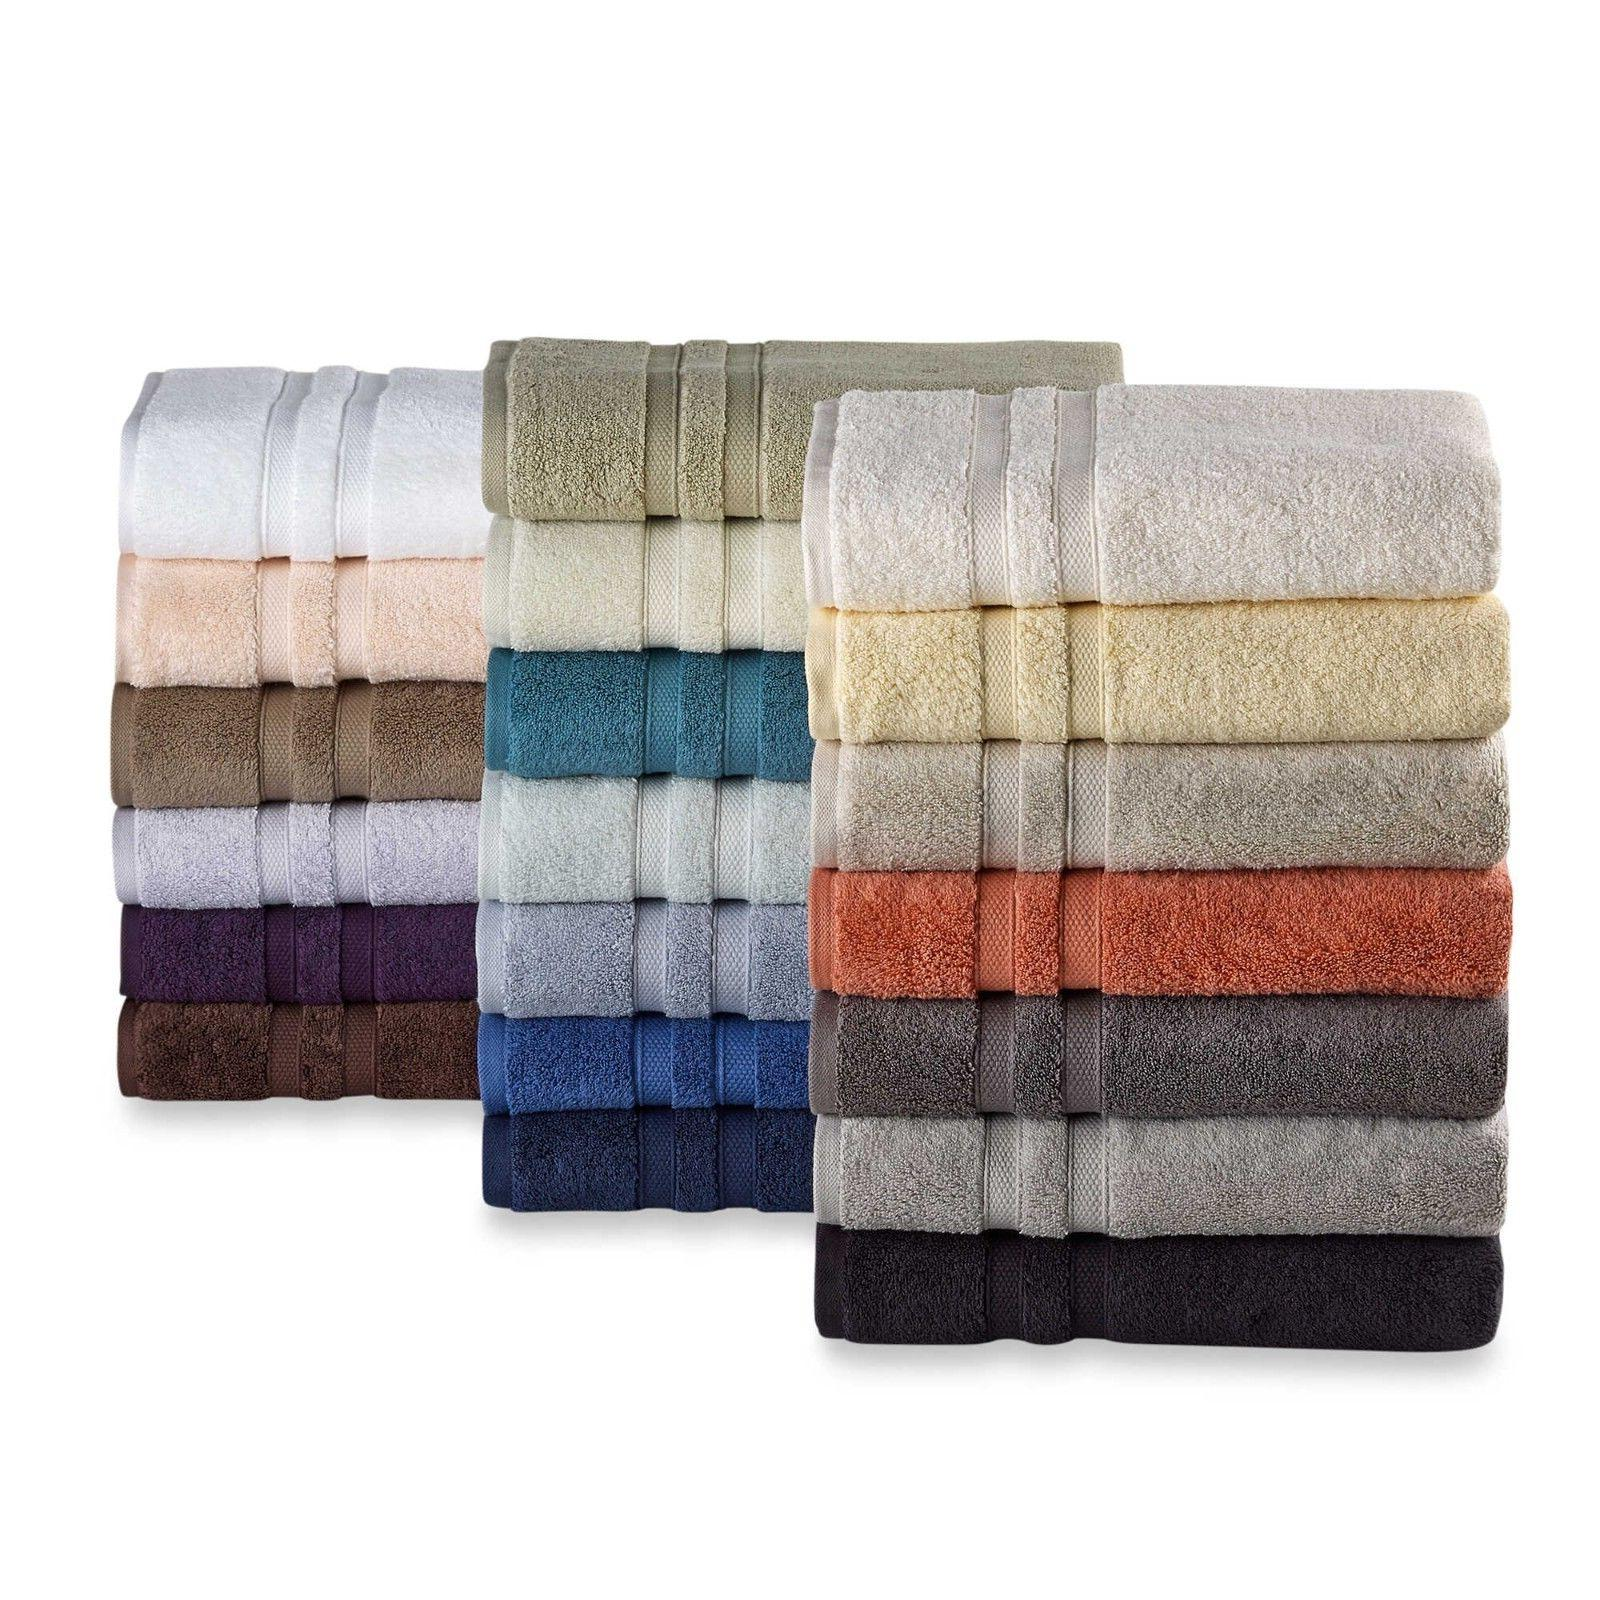 New Wamsutta Perfect Soft Micro Cotton Bath Collection